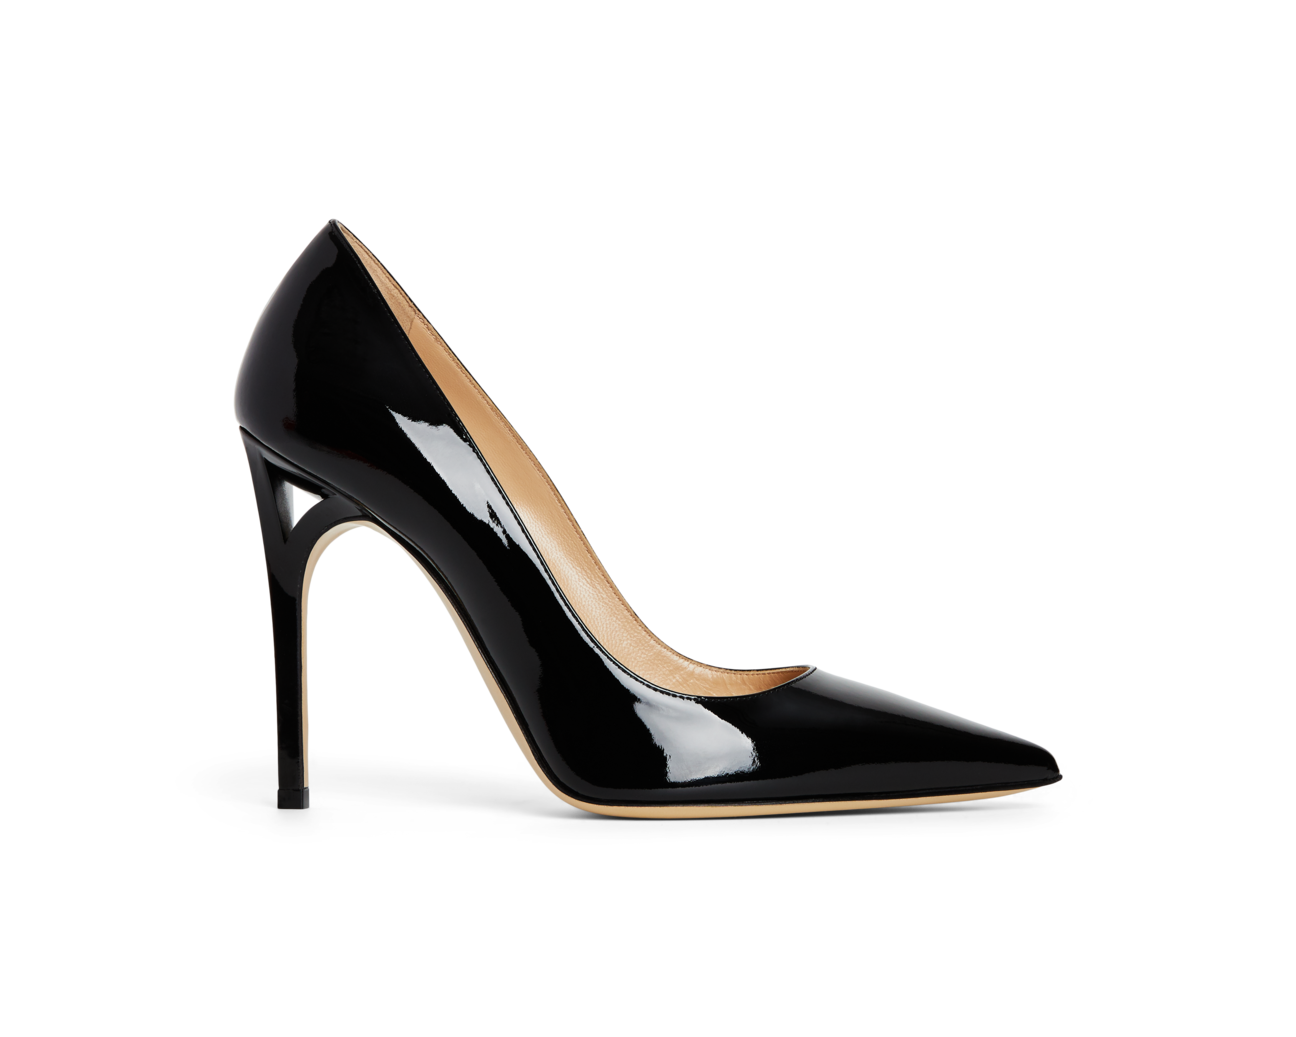 The Arcata M Gemi mgemi.com $348.00 SHOP NOW If you're more of stiletto type this ultra-feminine pump is crafted from soft patent leather with a supportive Y-shaped heel